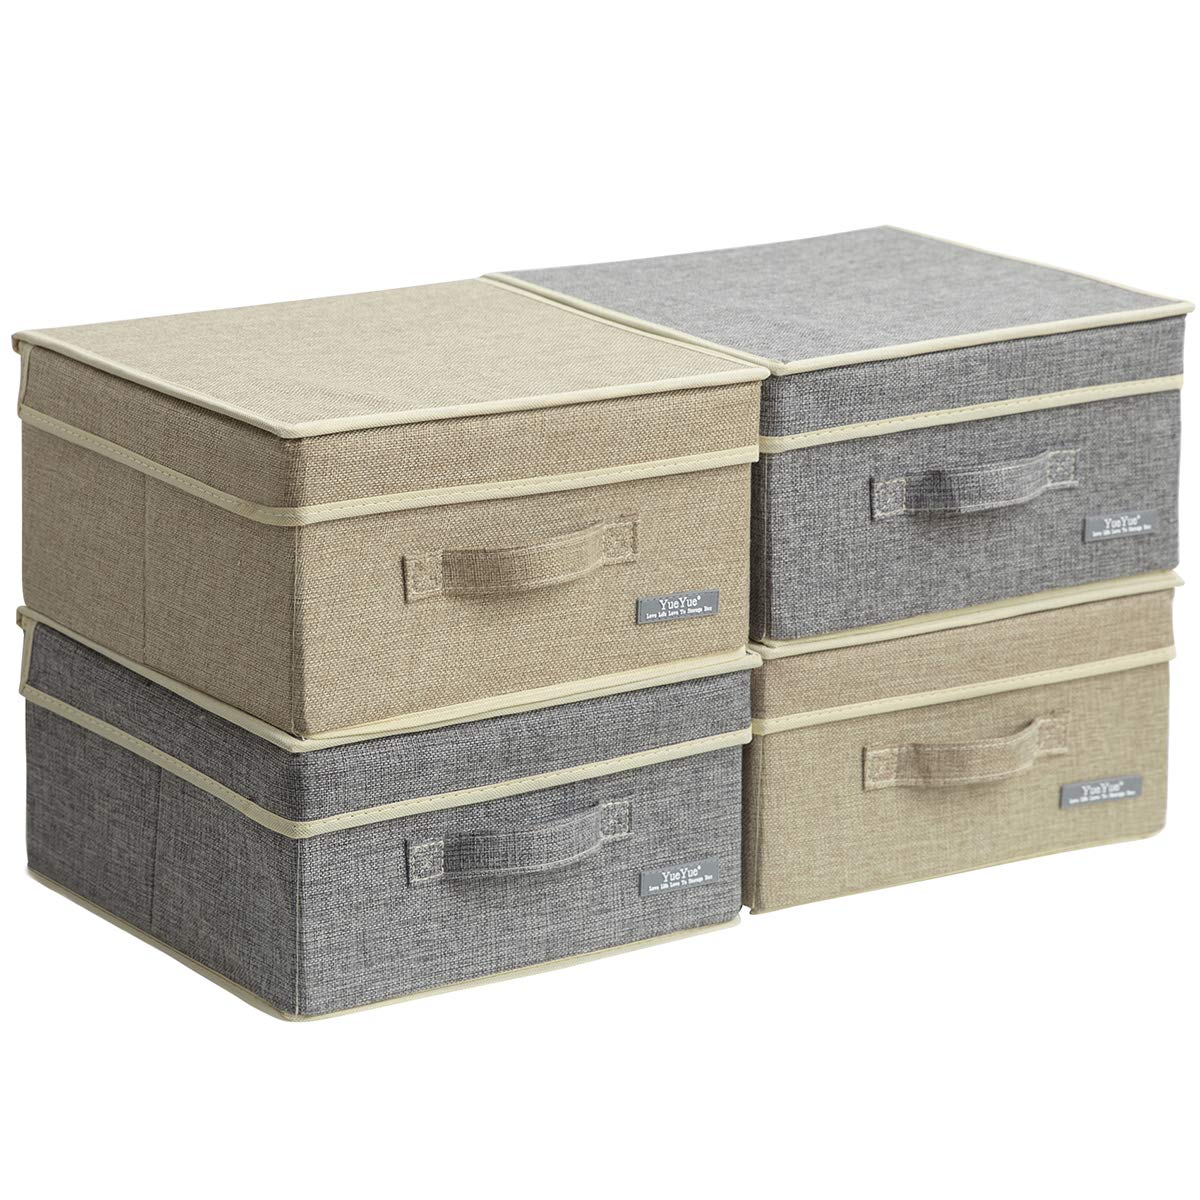 YueYue 4 Pack Small Fabric Storage Box with Lids, Foldable Linen Storage Box with Lids 4 Pieces Gray&Linen Set 12.4in/12in/6.7in by YueYue